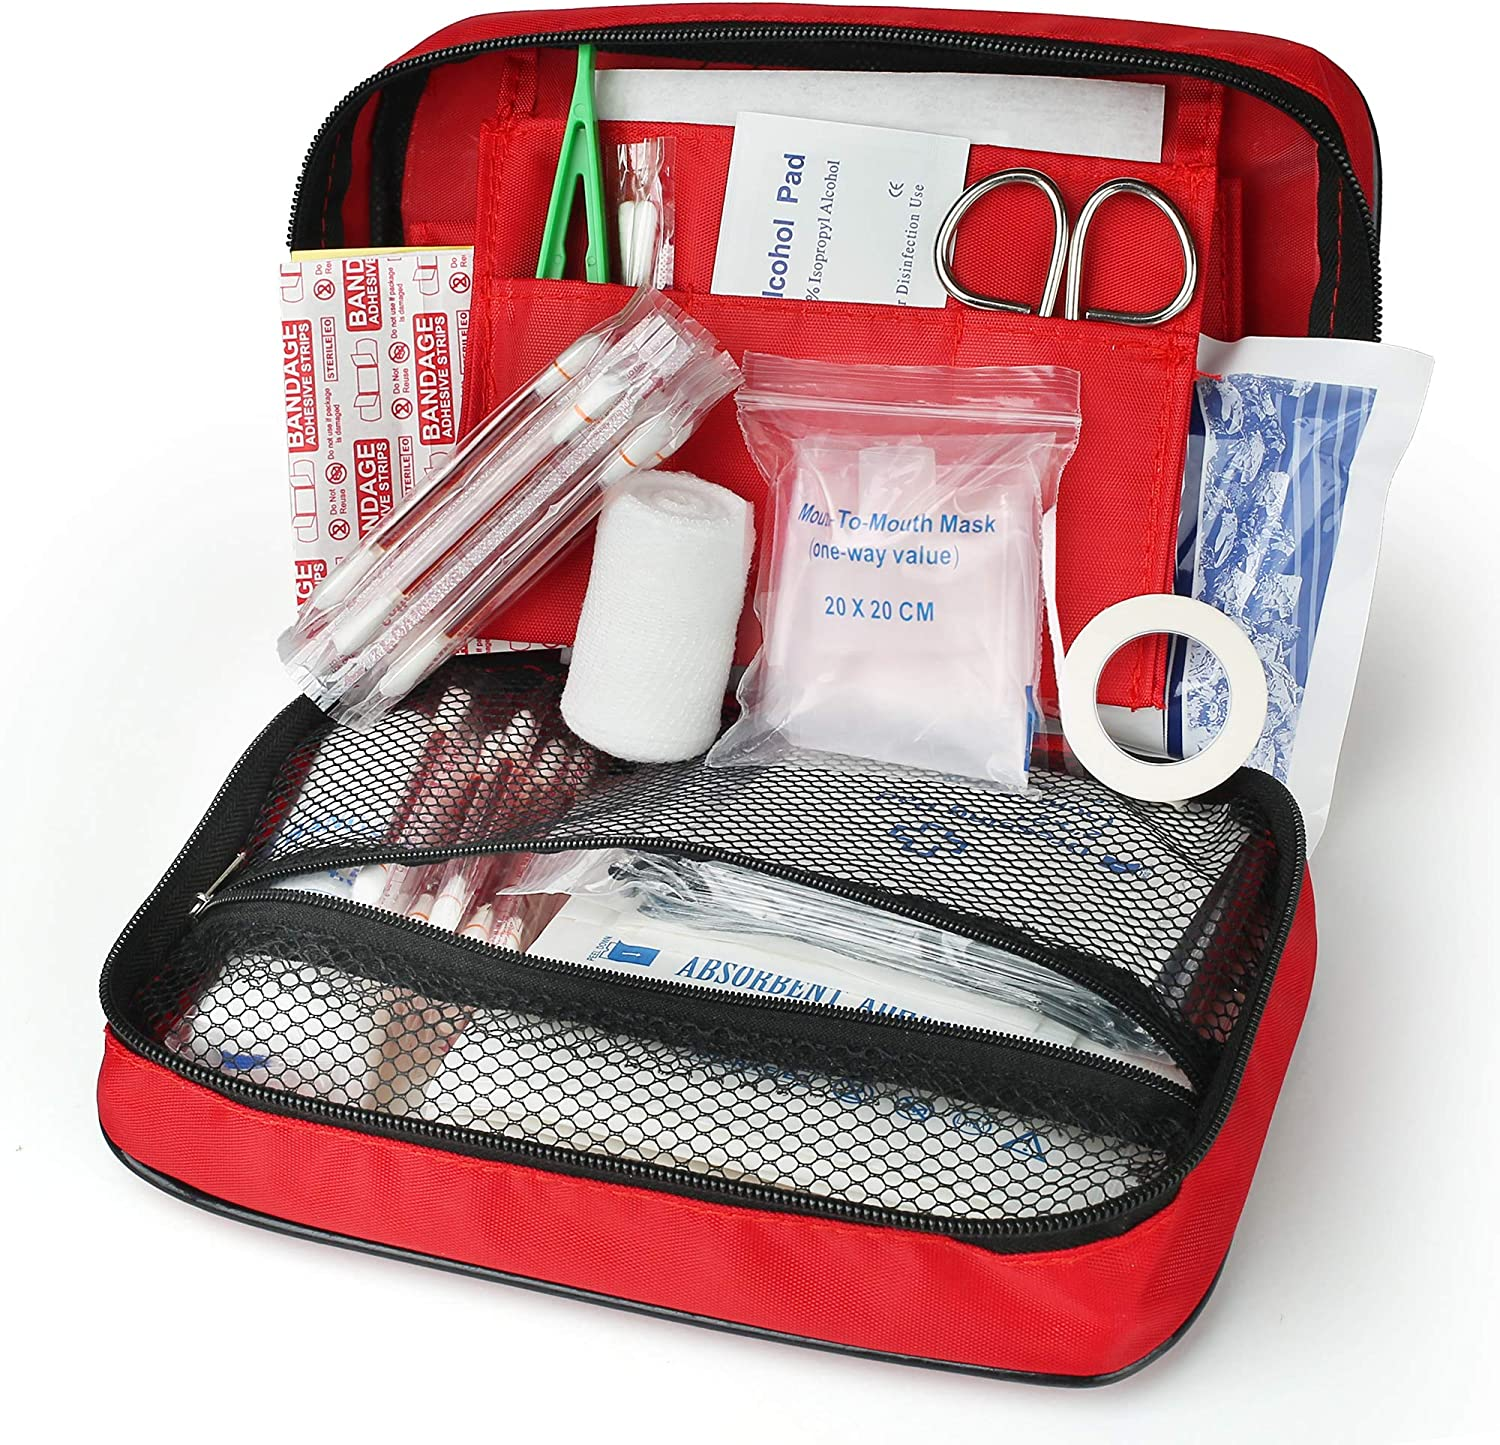 LotFancy Small First Aid Kit, First Aid Supplies for Home Wilderness Car Travel Office Workplace Businesses Camping Boating, Portable Medic Trauma Bag, Medical Emergency Kit